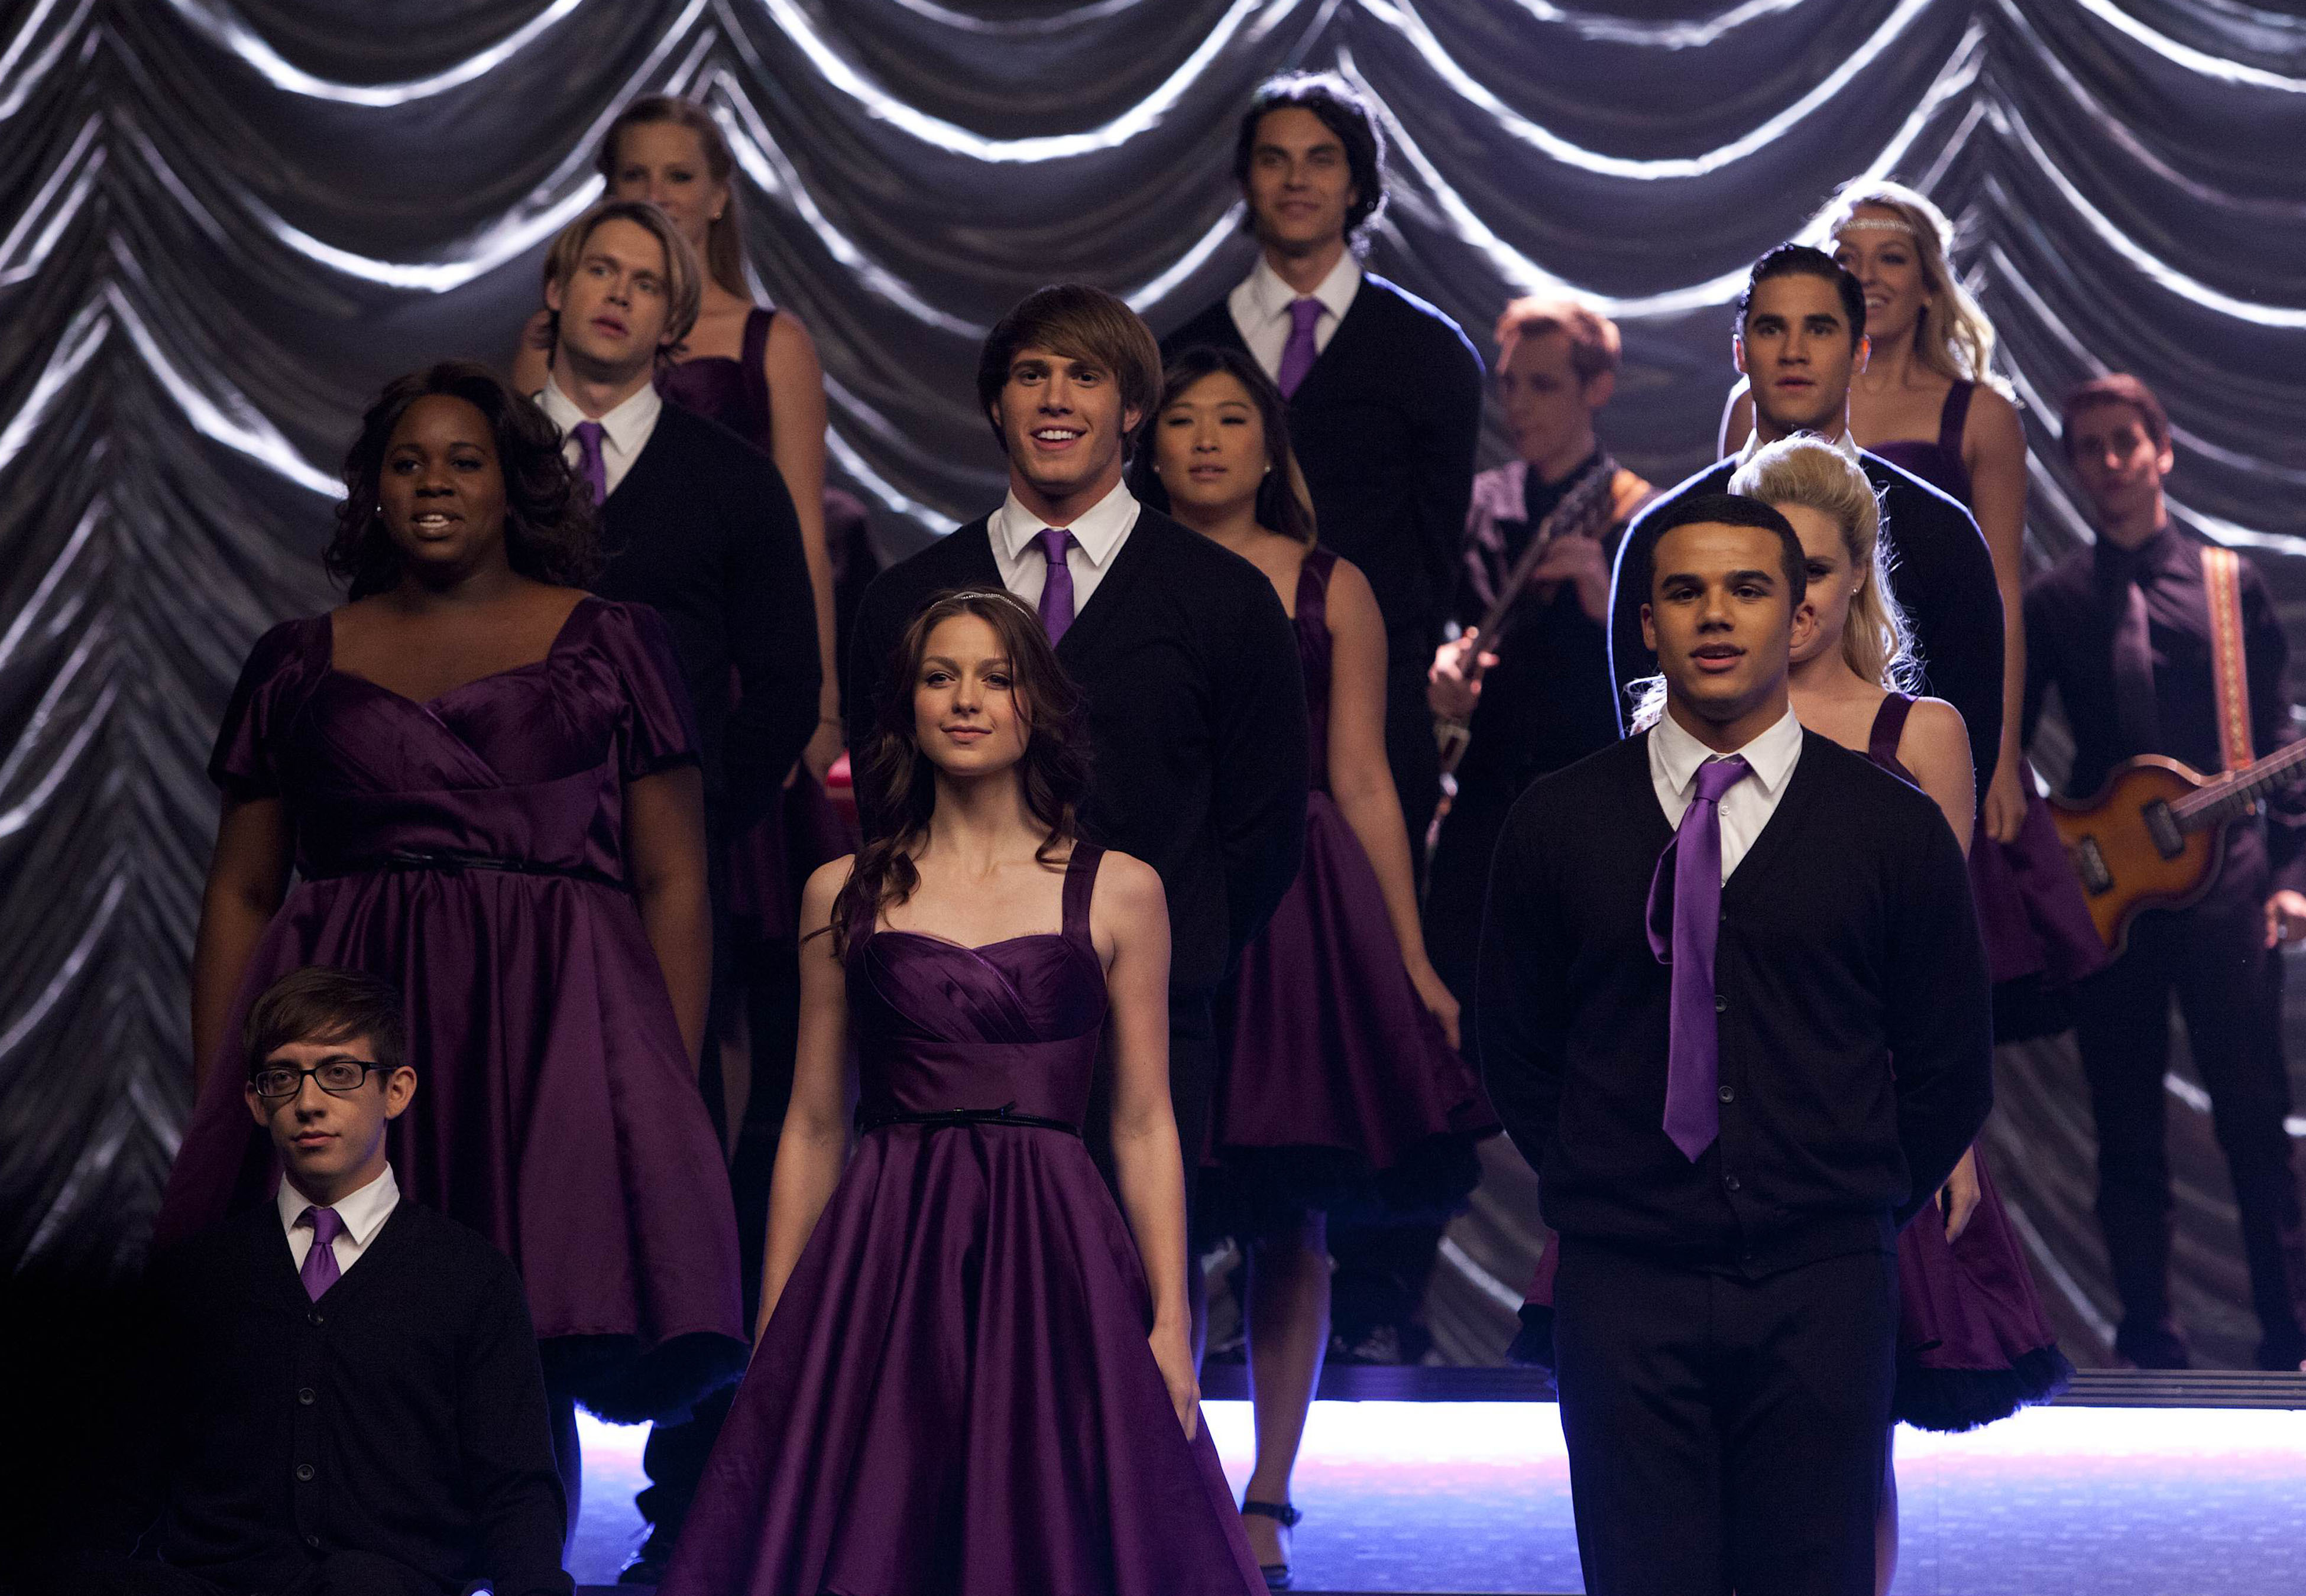 The Glee Final Sectionals Set List Is But Can It Beat Past Compeions